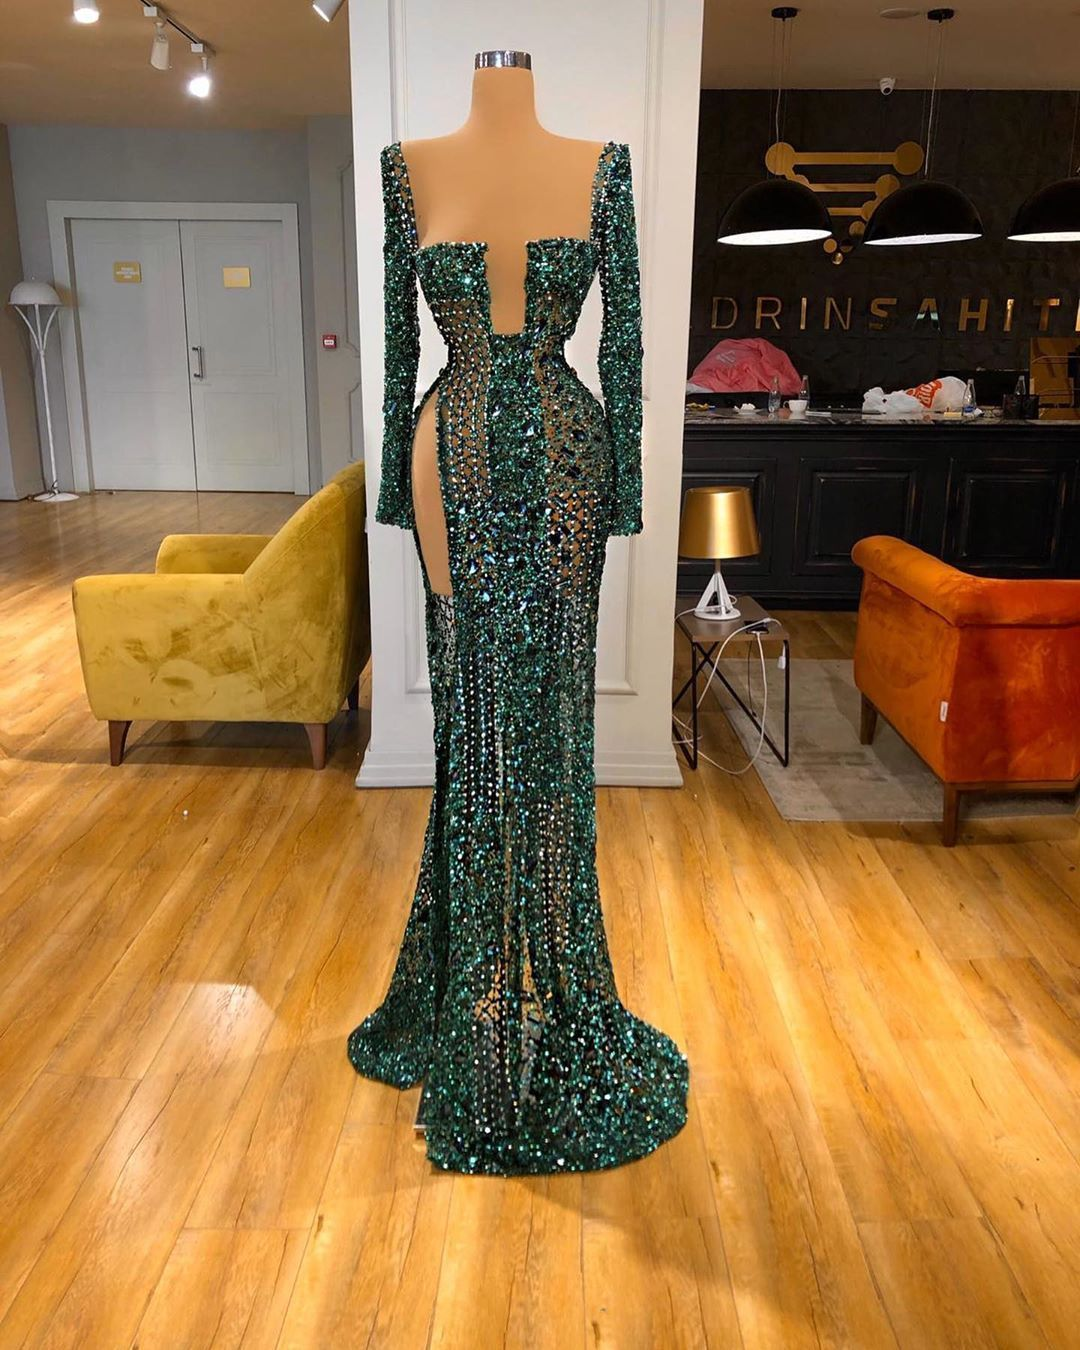 Stunning Valdrin Sahiti Custom Couture Gown Find The Perfect Gown With Pageant Planet Browse All Of Our Beautiful In 2020 Pageant Dresses Gowns Dresses Prom Outfits